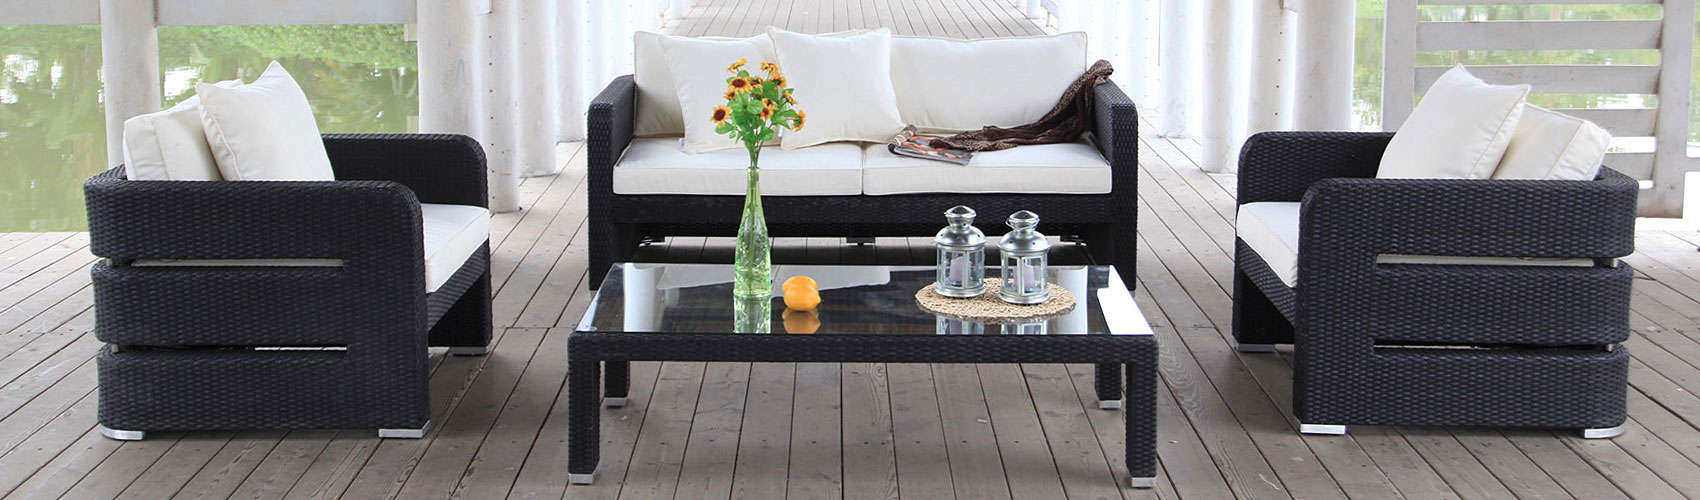 rattan lounge und rattan m bel g nstig online kaufen balkon und terrassenm bel. Black Bedroom Furniture Sets. Home Design Ideas